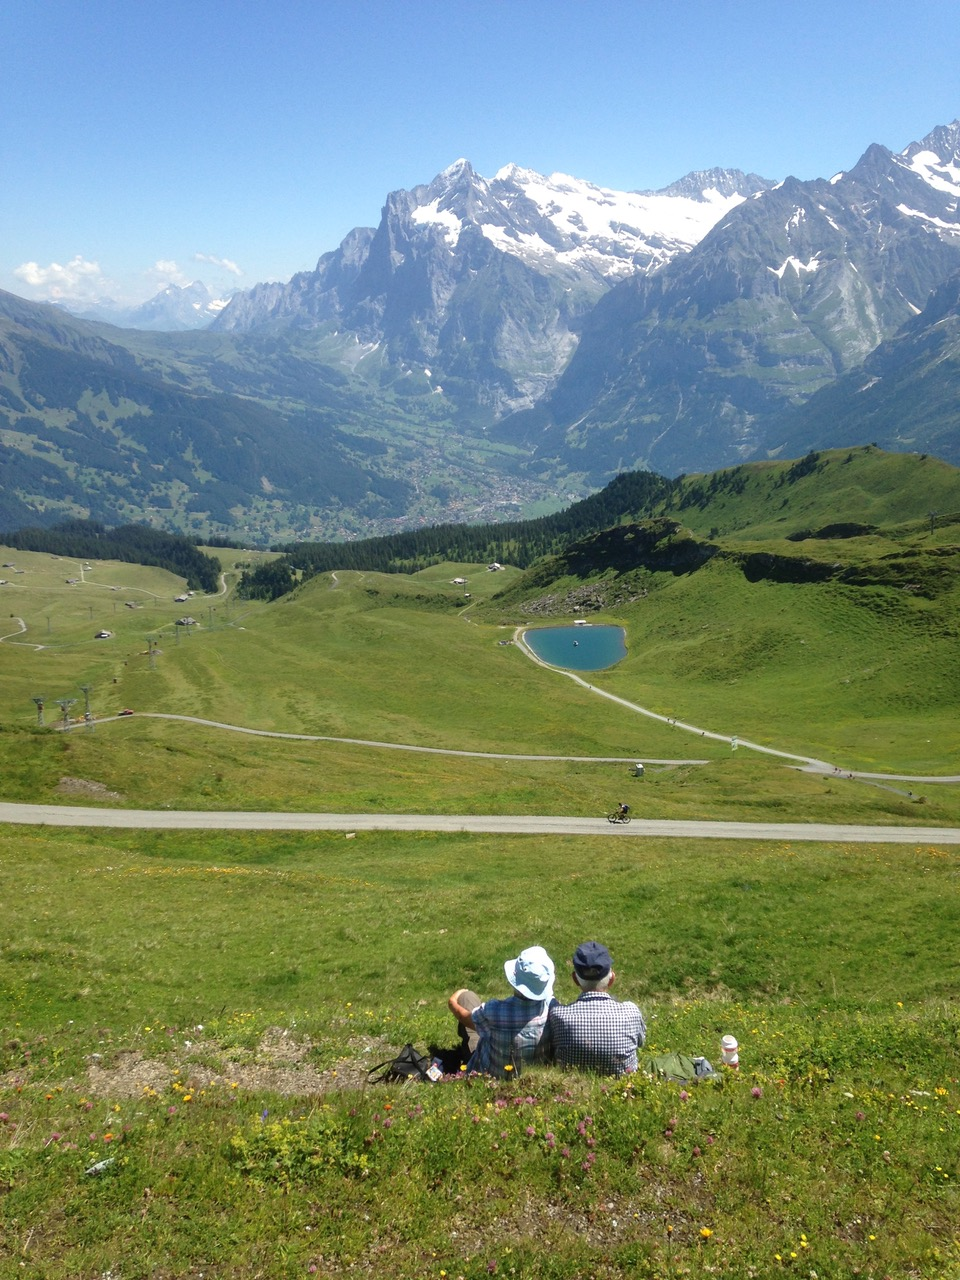 Glorious vistas and places to stop and picnic, from a trail near Wengen. Grindelwald in the distance.